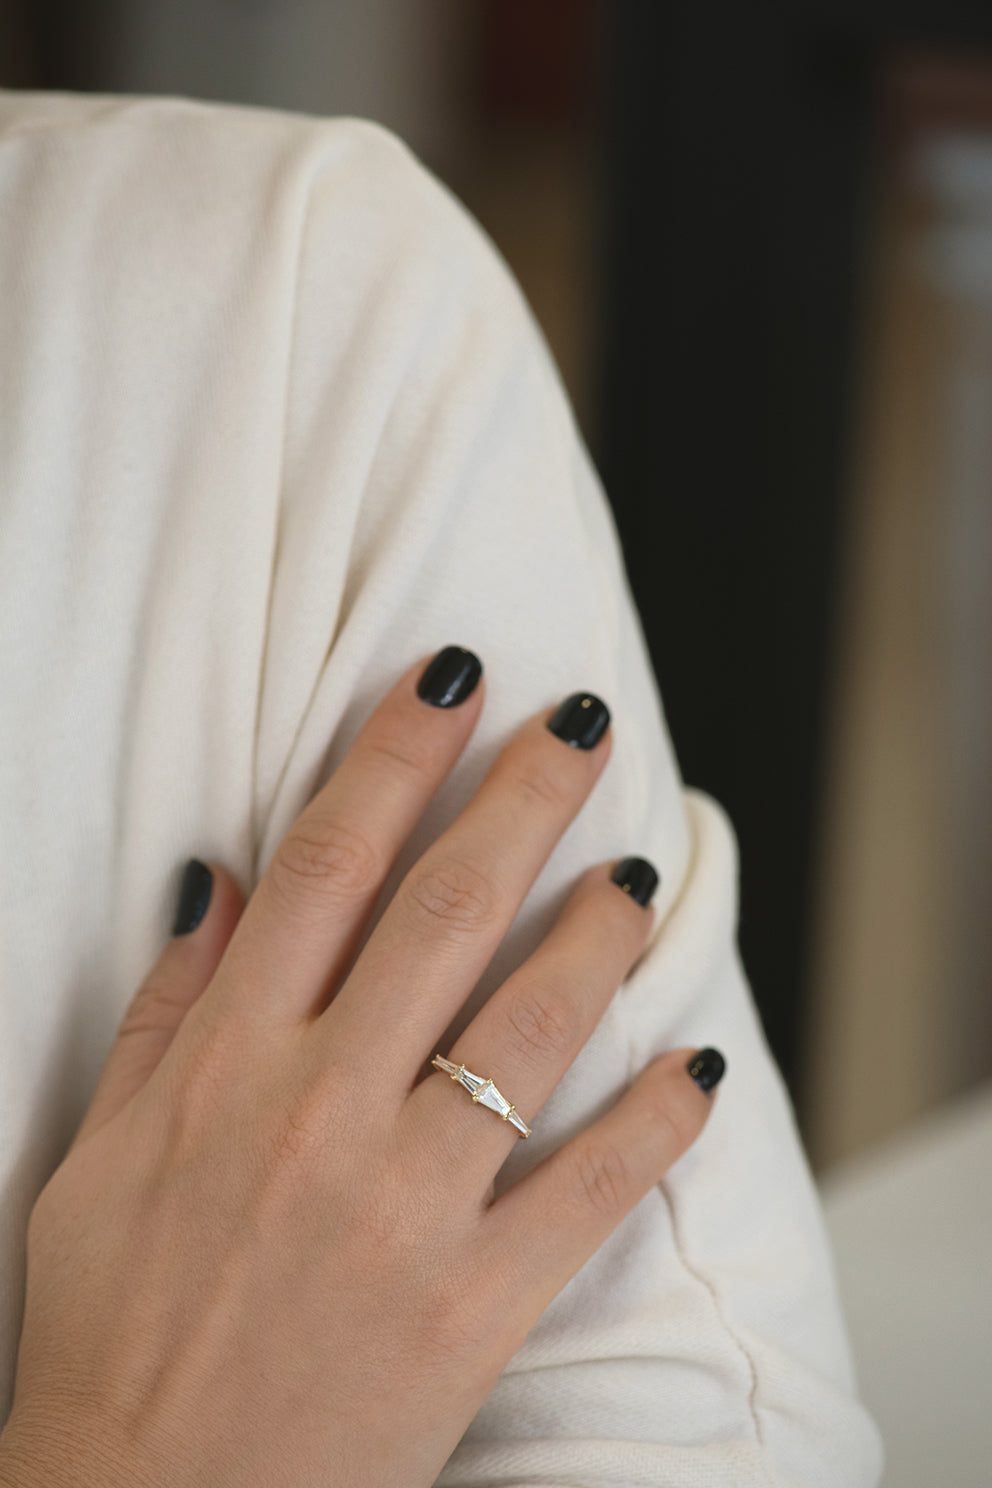 Tapered Baguette Engagement Ring on Hands with Shoulder